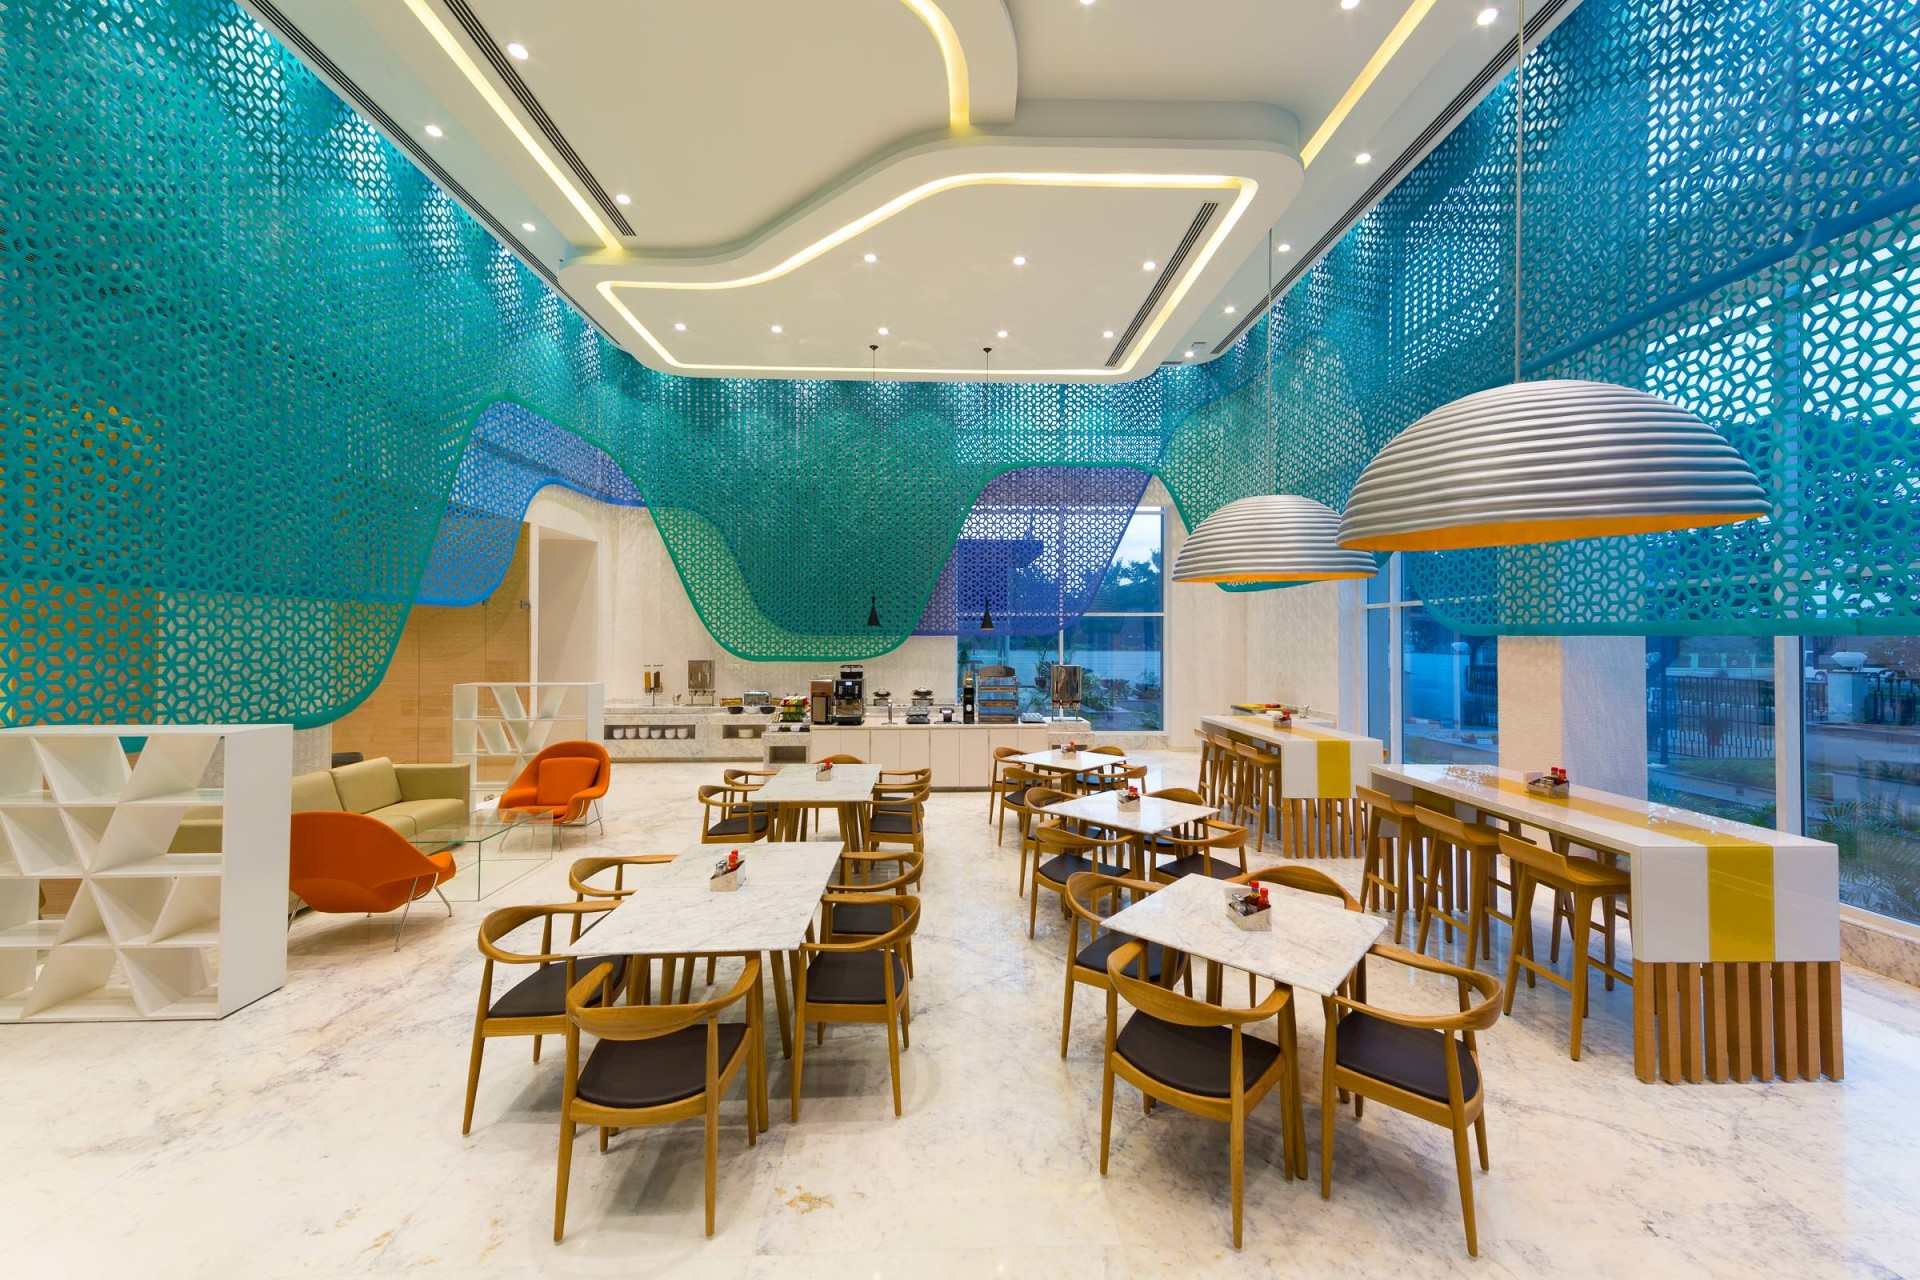 Best Architecture Photographer India | Holiday Inn Express Restaurant